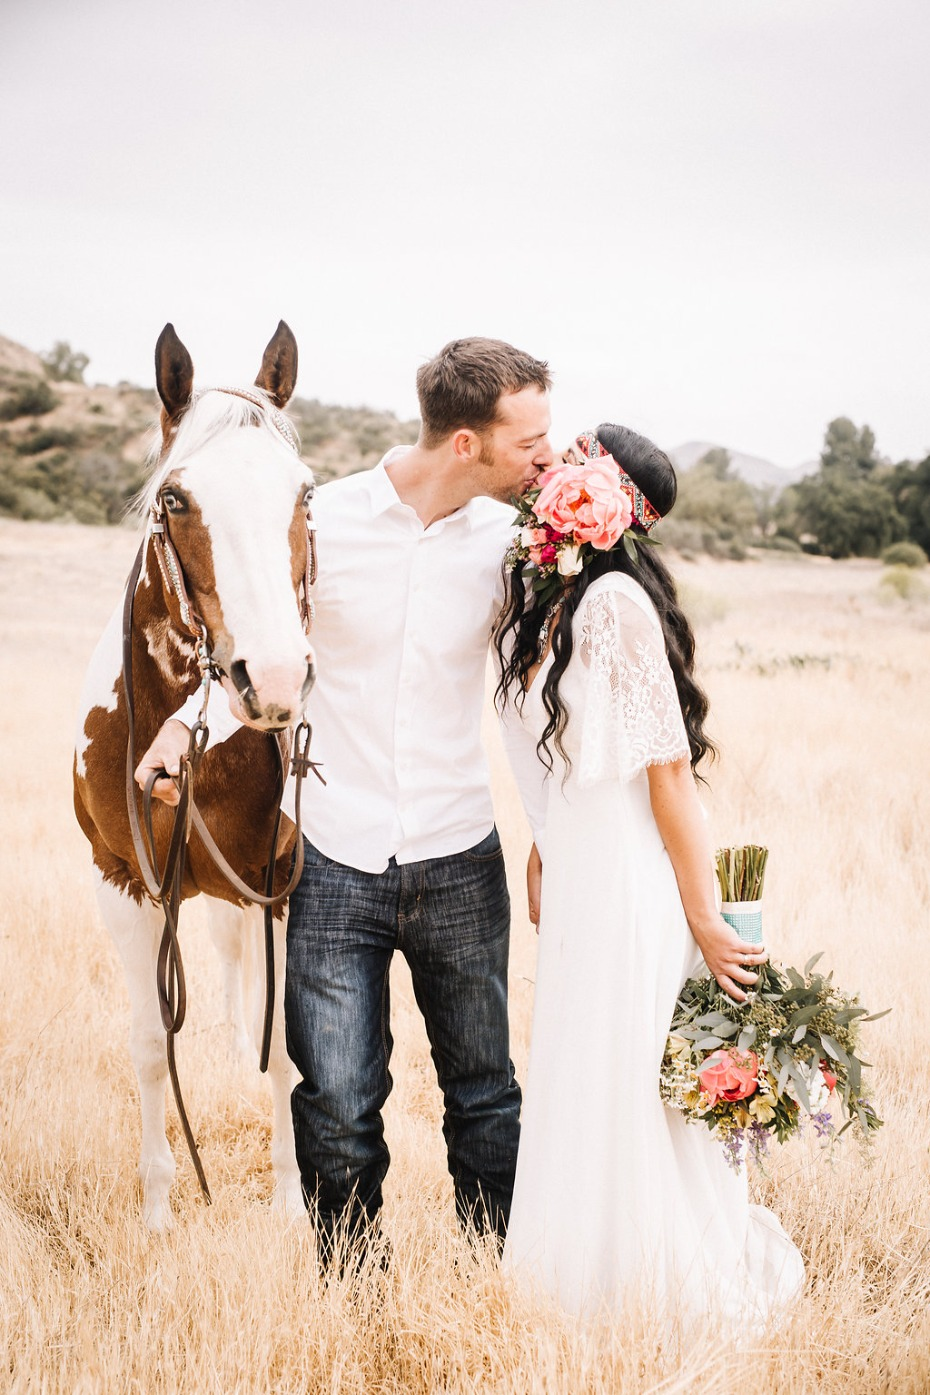 Southwestern boho wedding ideas